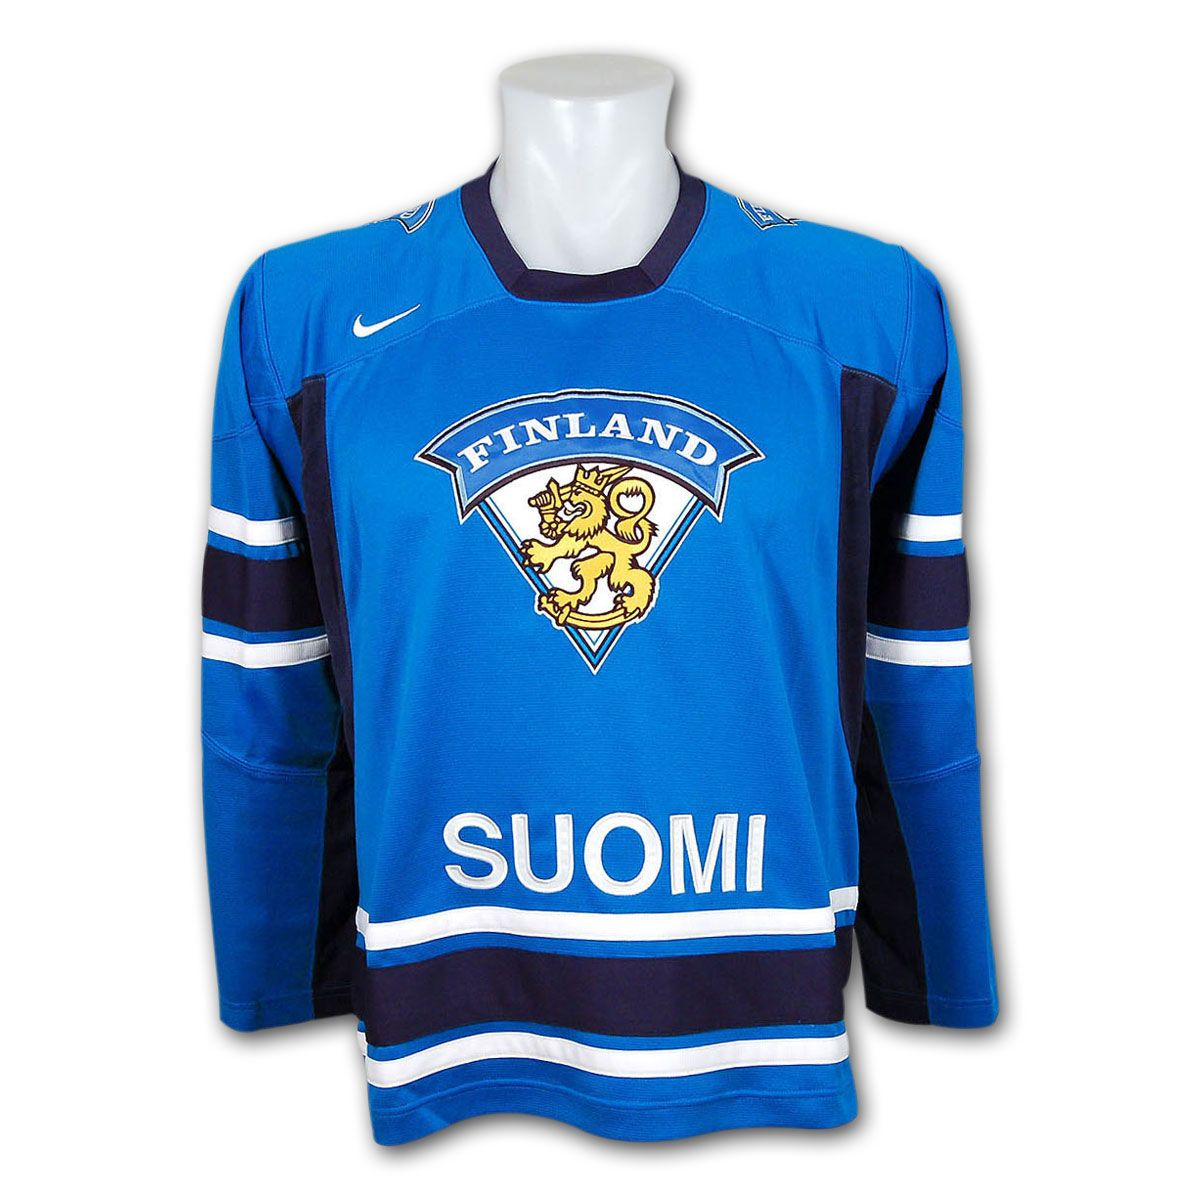 a40cd3d25175e Team Finland Jersey. I have the same one, but the maincolor's white ...